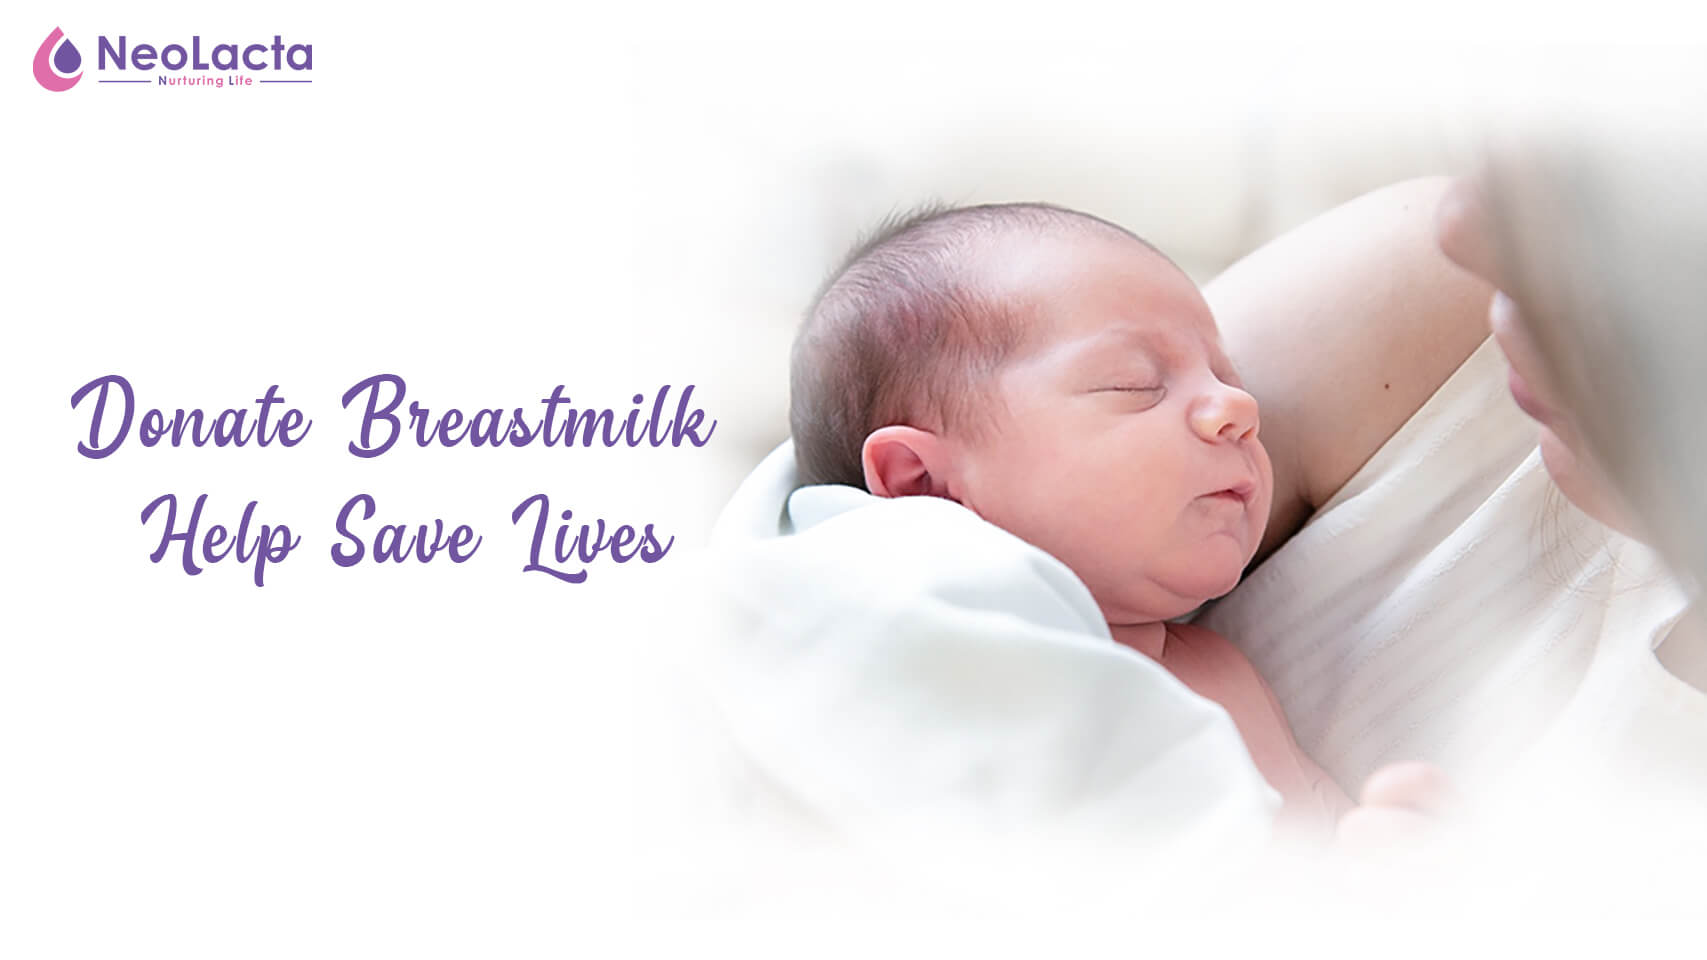 DONATE BREAST MILK AND SAVE LIVES